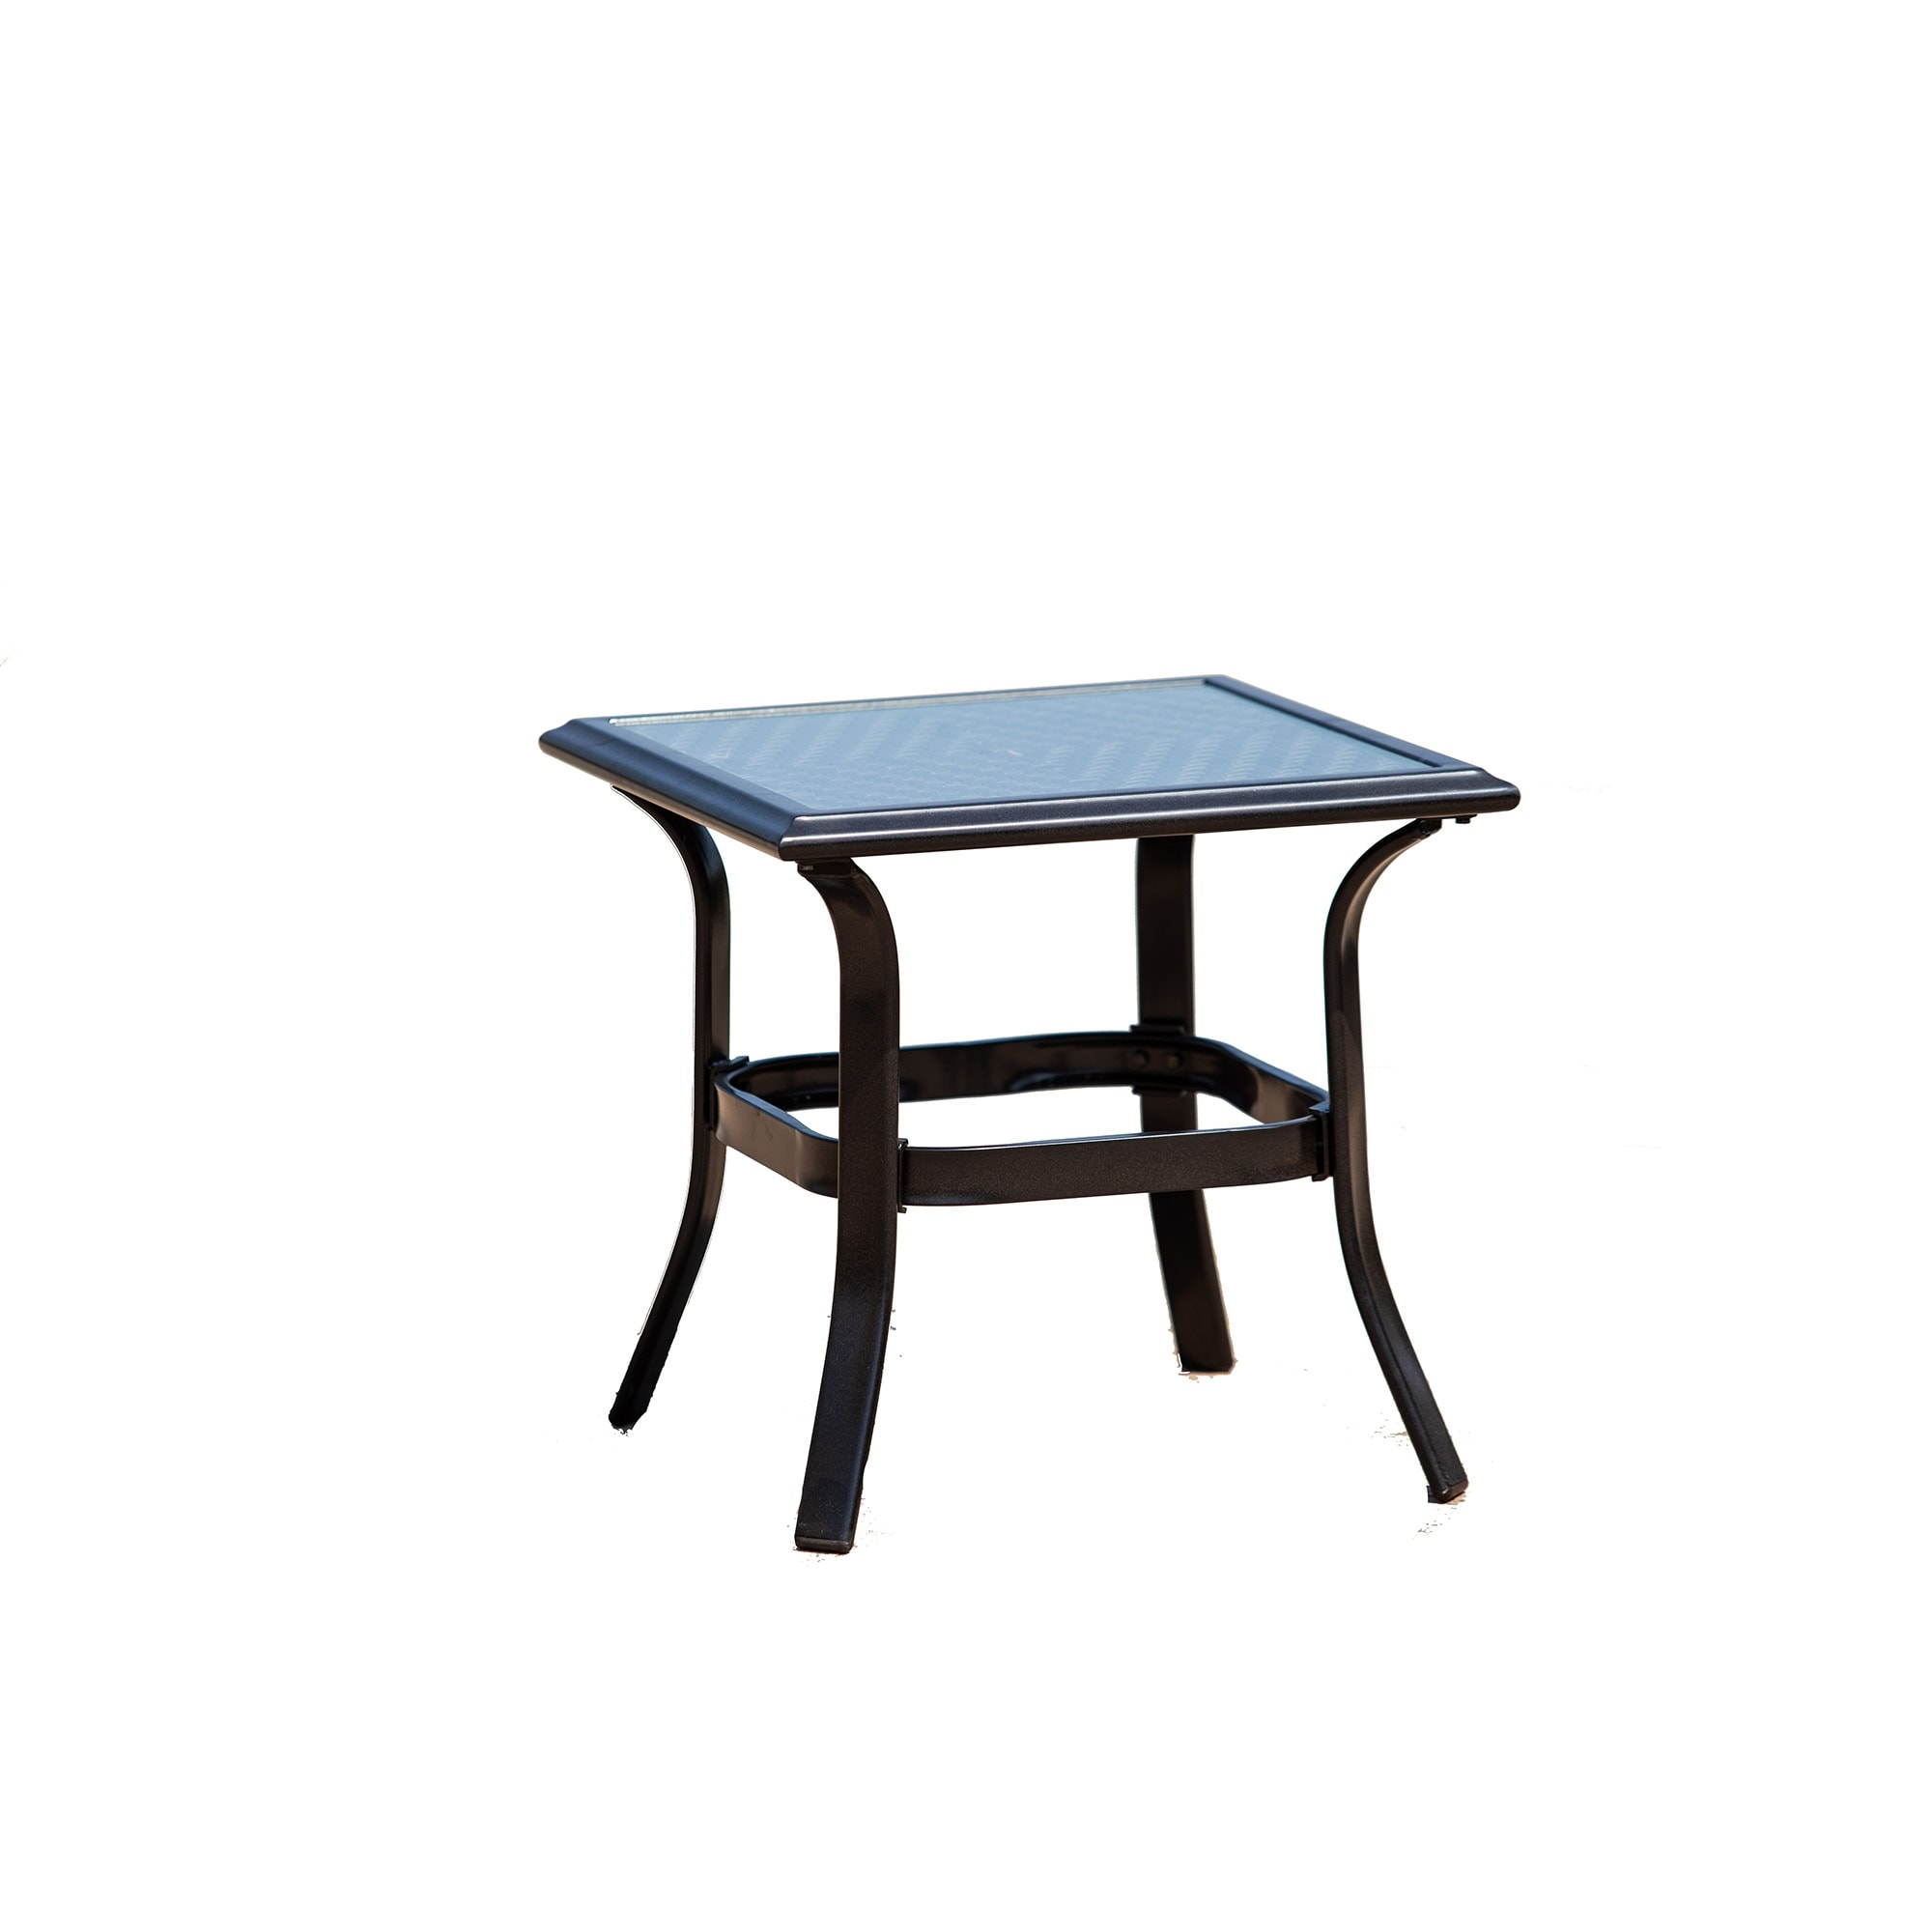 Picture of: Patio Iron Side Table Perfect For Balcony Deck Overstock 31747465